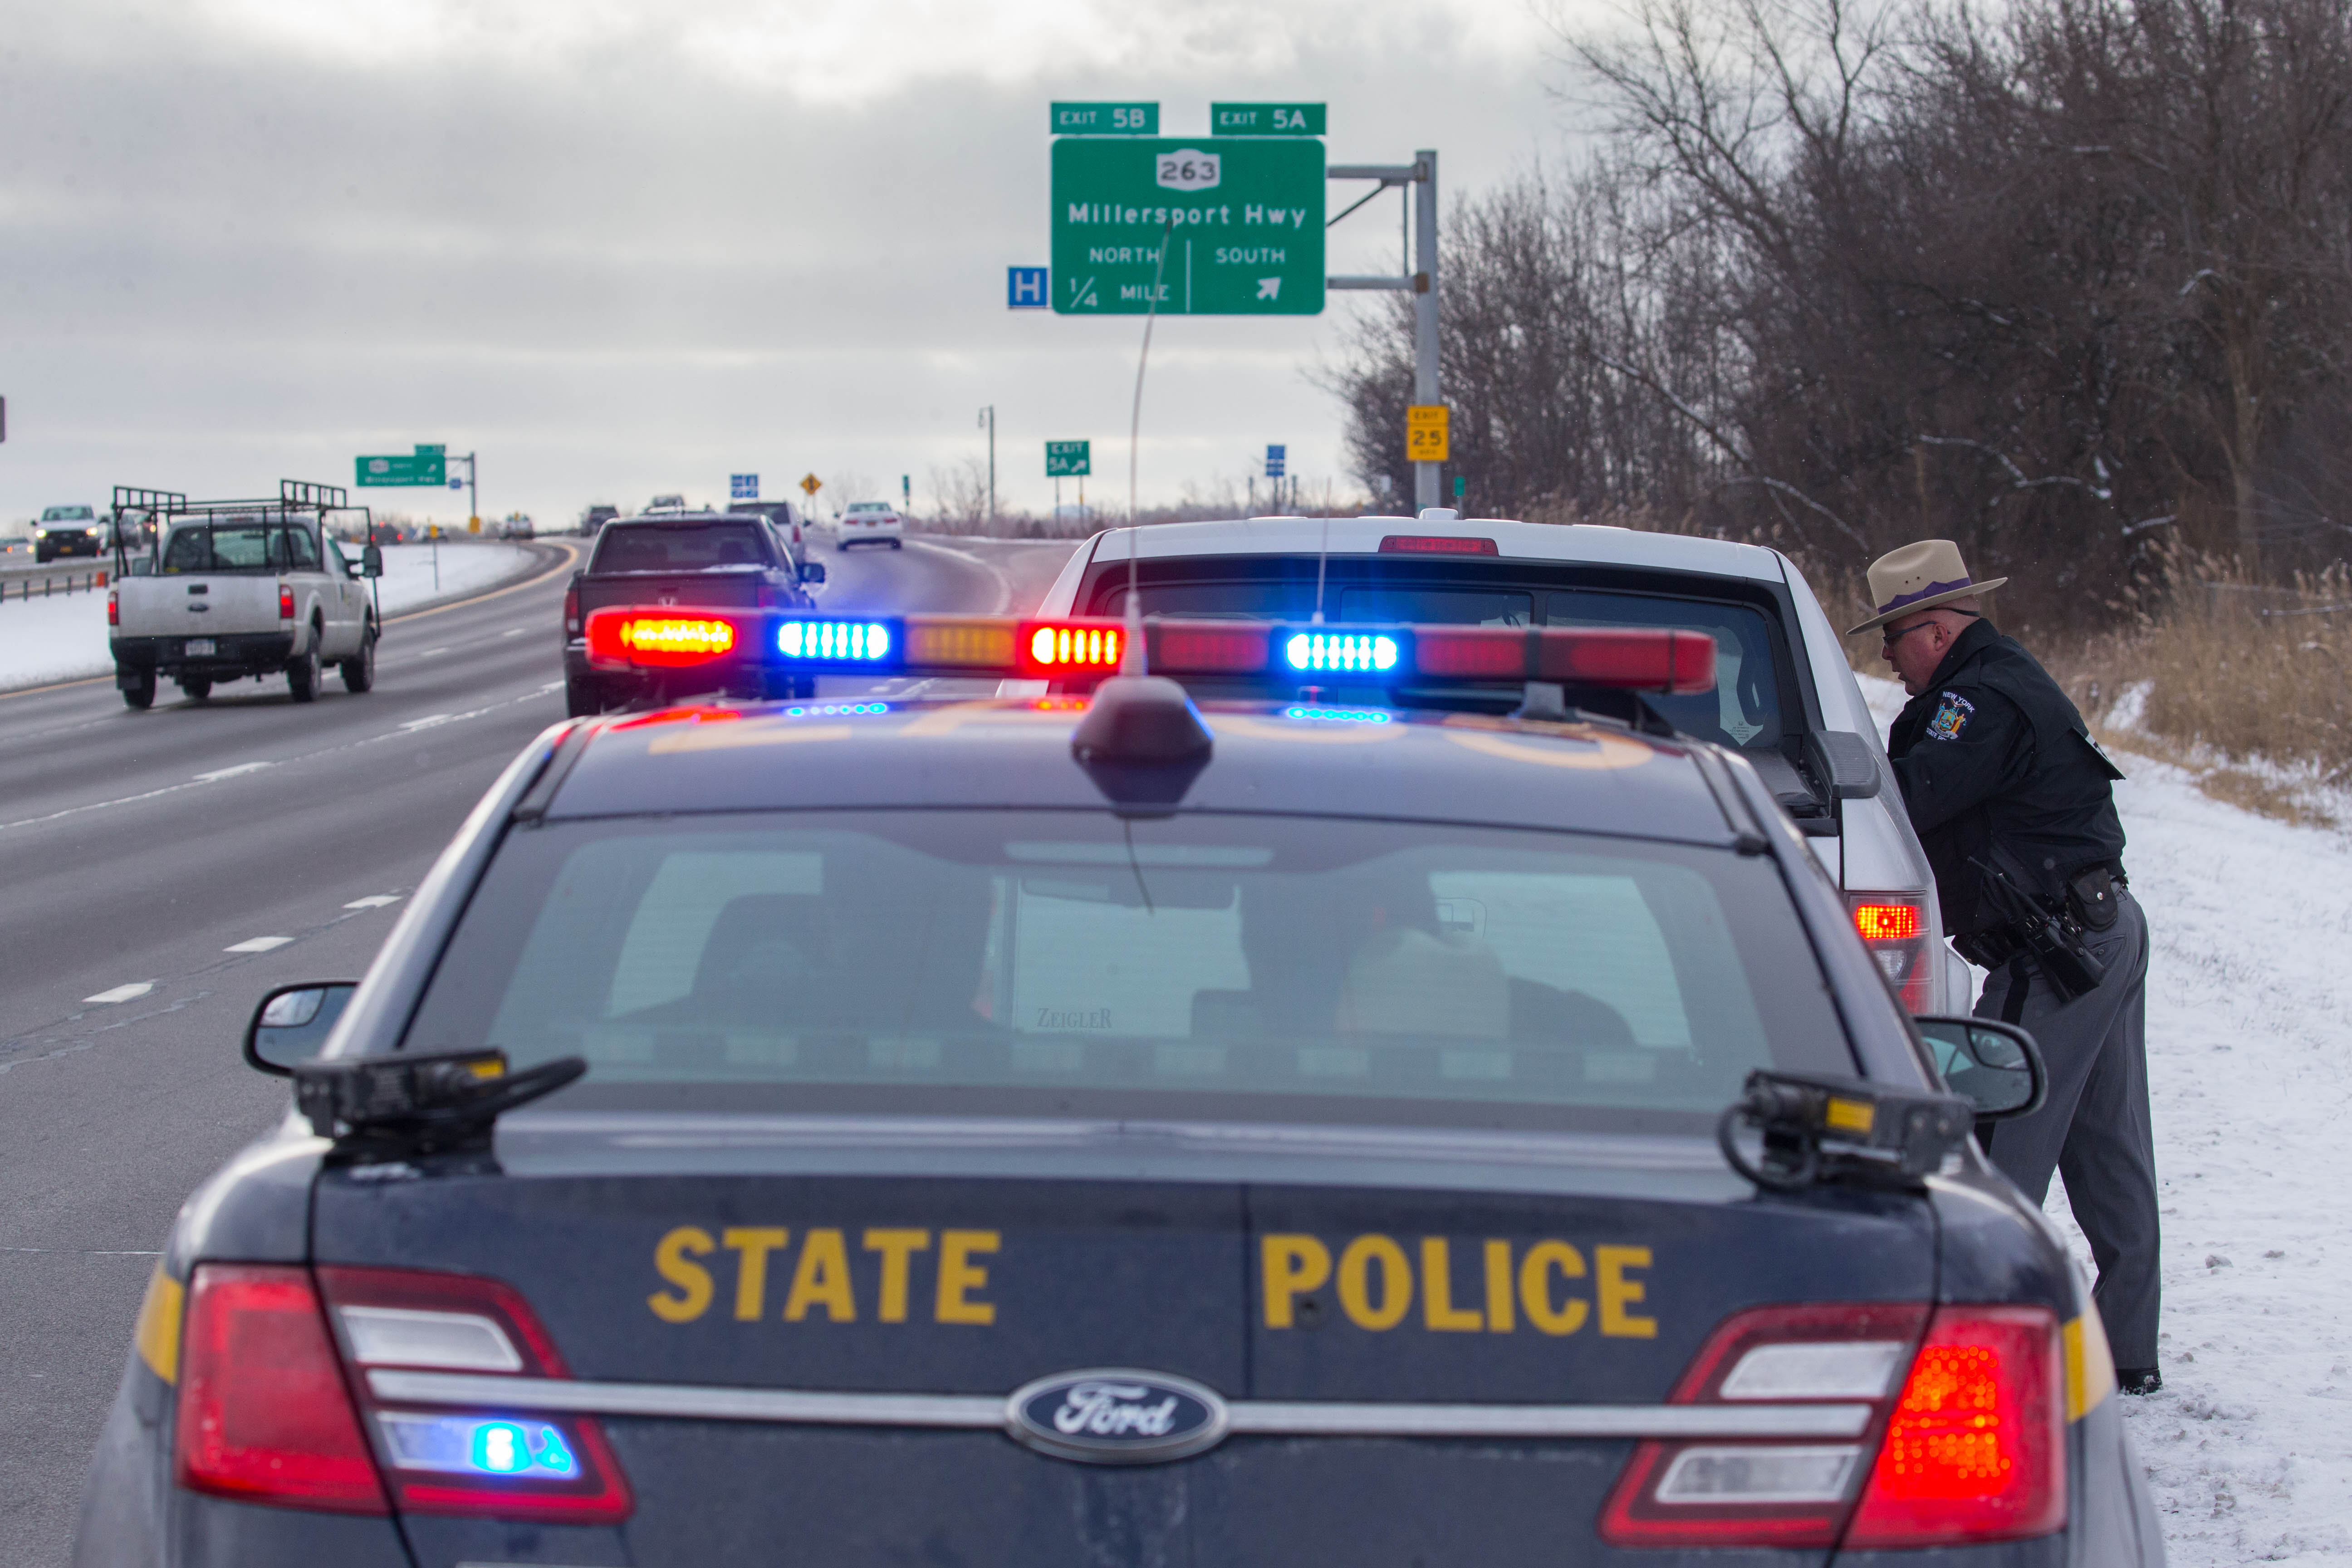 New York State Trooper John Betker talks to a motorist he pulled over for speeding while patrolling Interstate-290 in Amherst on Monday, Jan. 30, 2017.  Amherst Town Court collects more revenue, most of it from  traffic fines, than all but three of the 1,219 town and village courts in New York. (Derek Gee/Buffalo News)